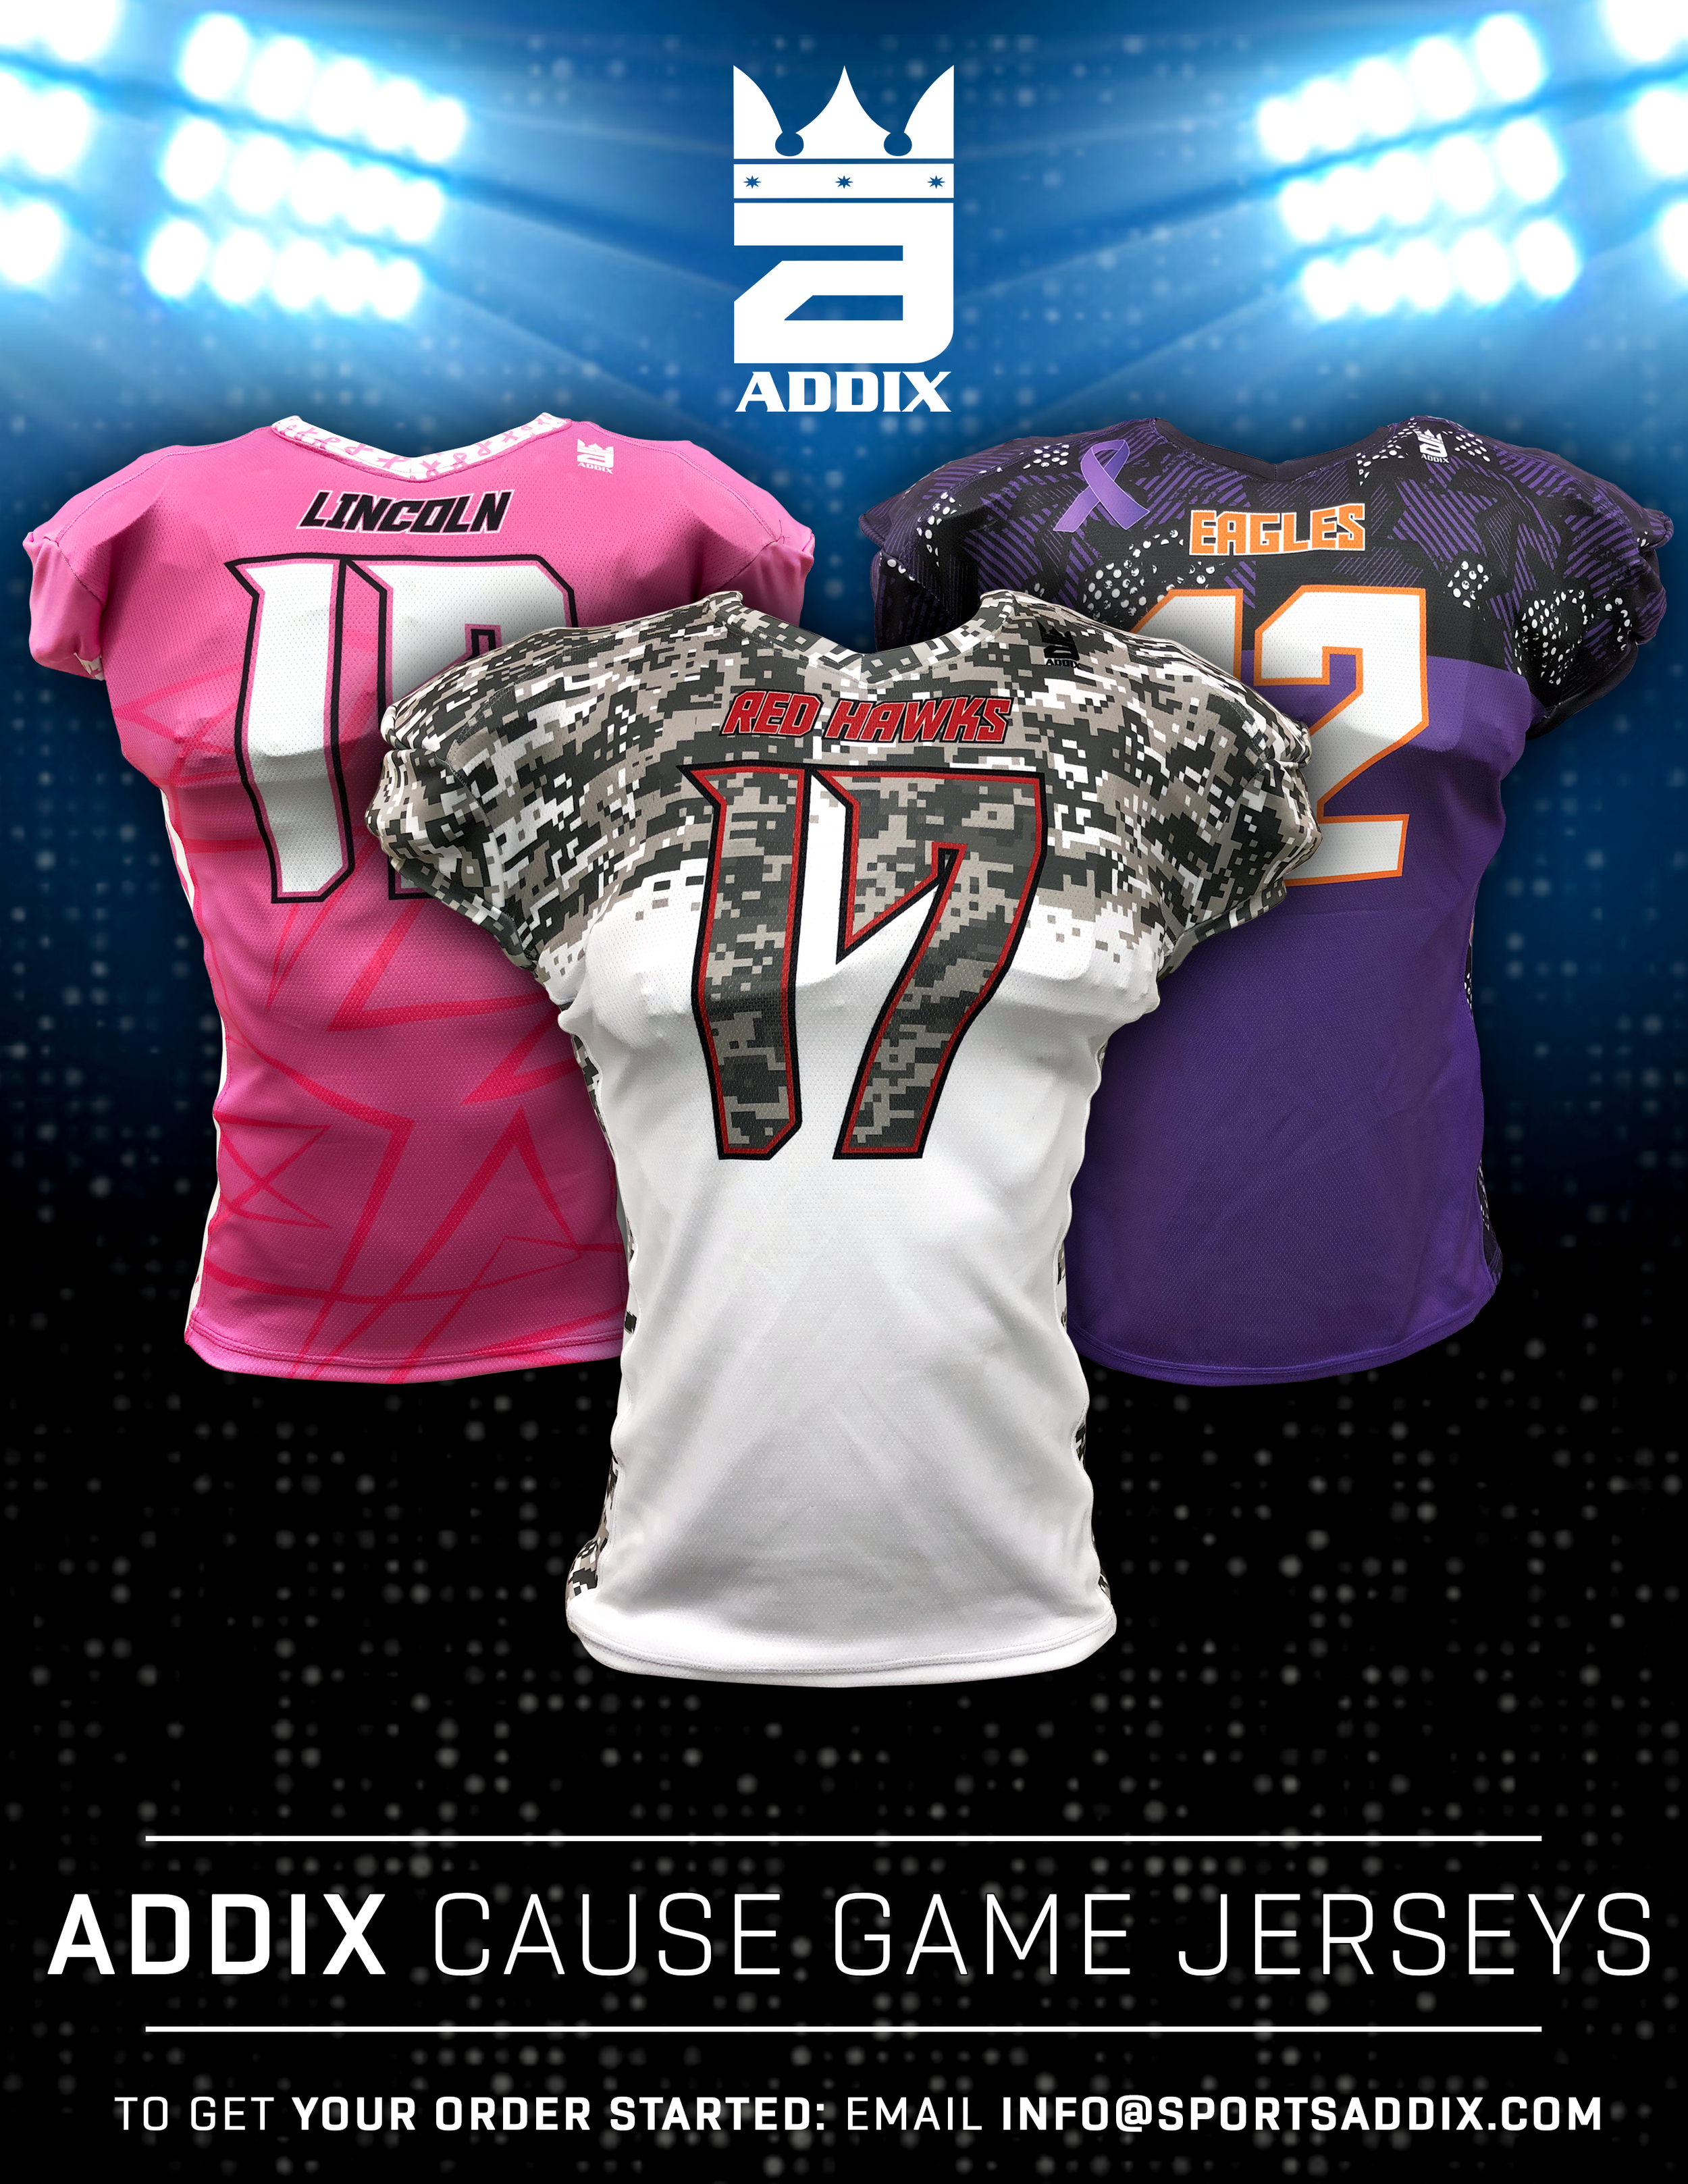 Congratulations to our AGAGB Finalists! - Sign up for winter and spring AGAGB at addixgear.com/giveback, to CREATE Your OWN cause game jerseys OR FAN JERSEYS visit addixgear.com/cub